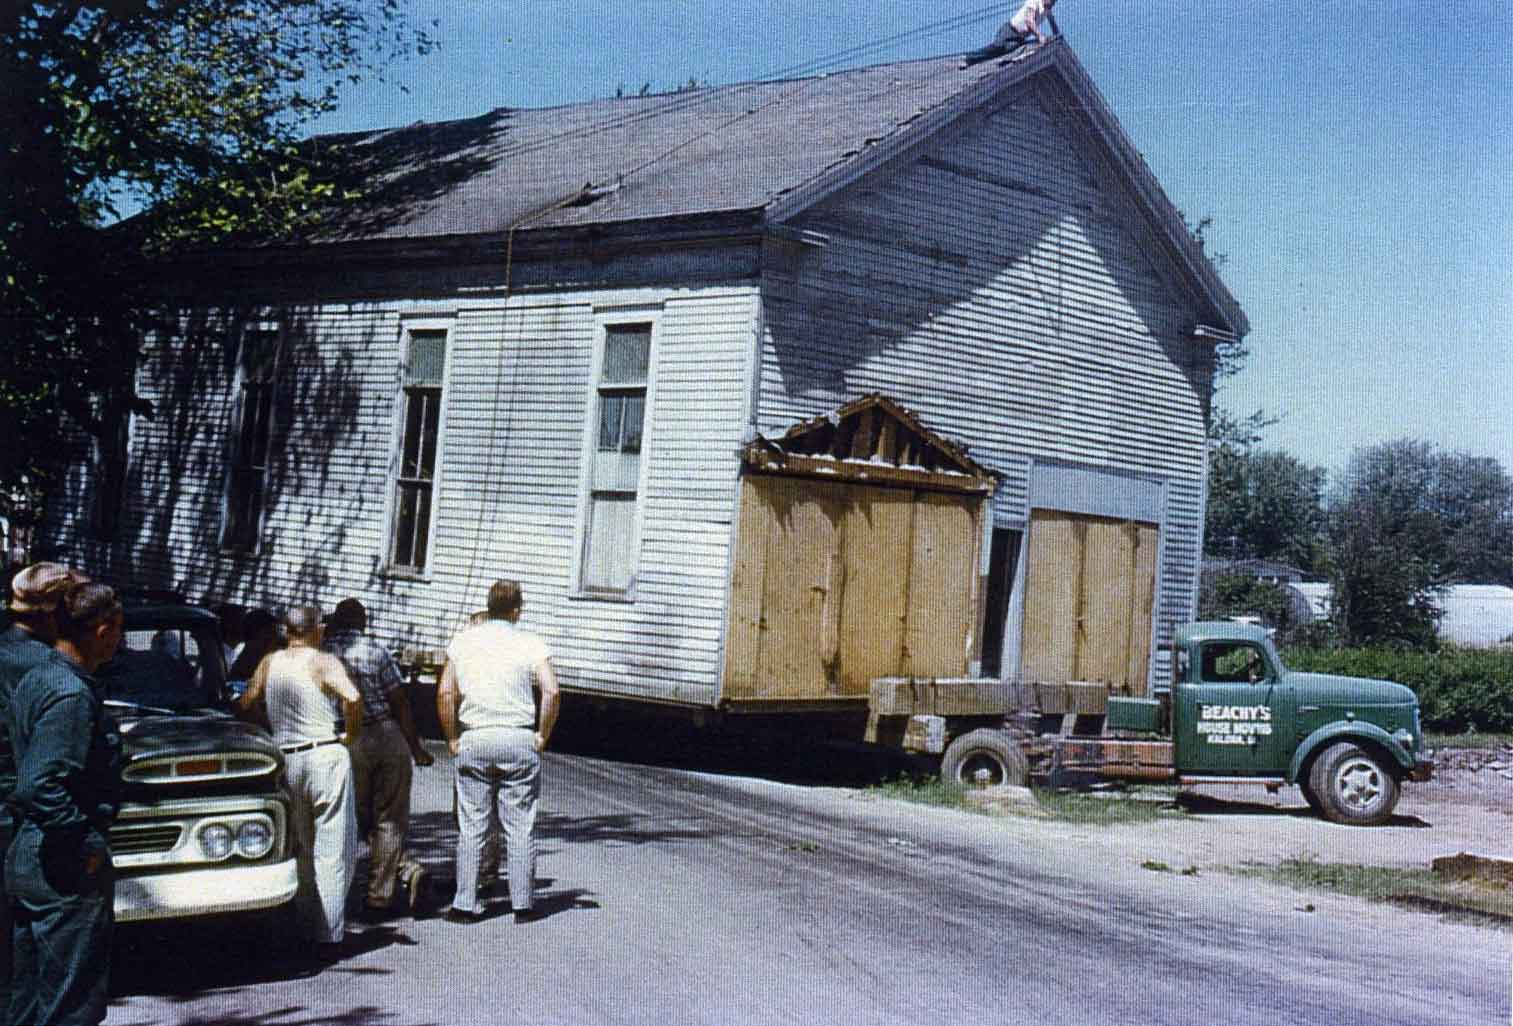 Men watch as a pick-up truck moves a wooden building down a road.